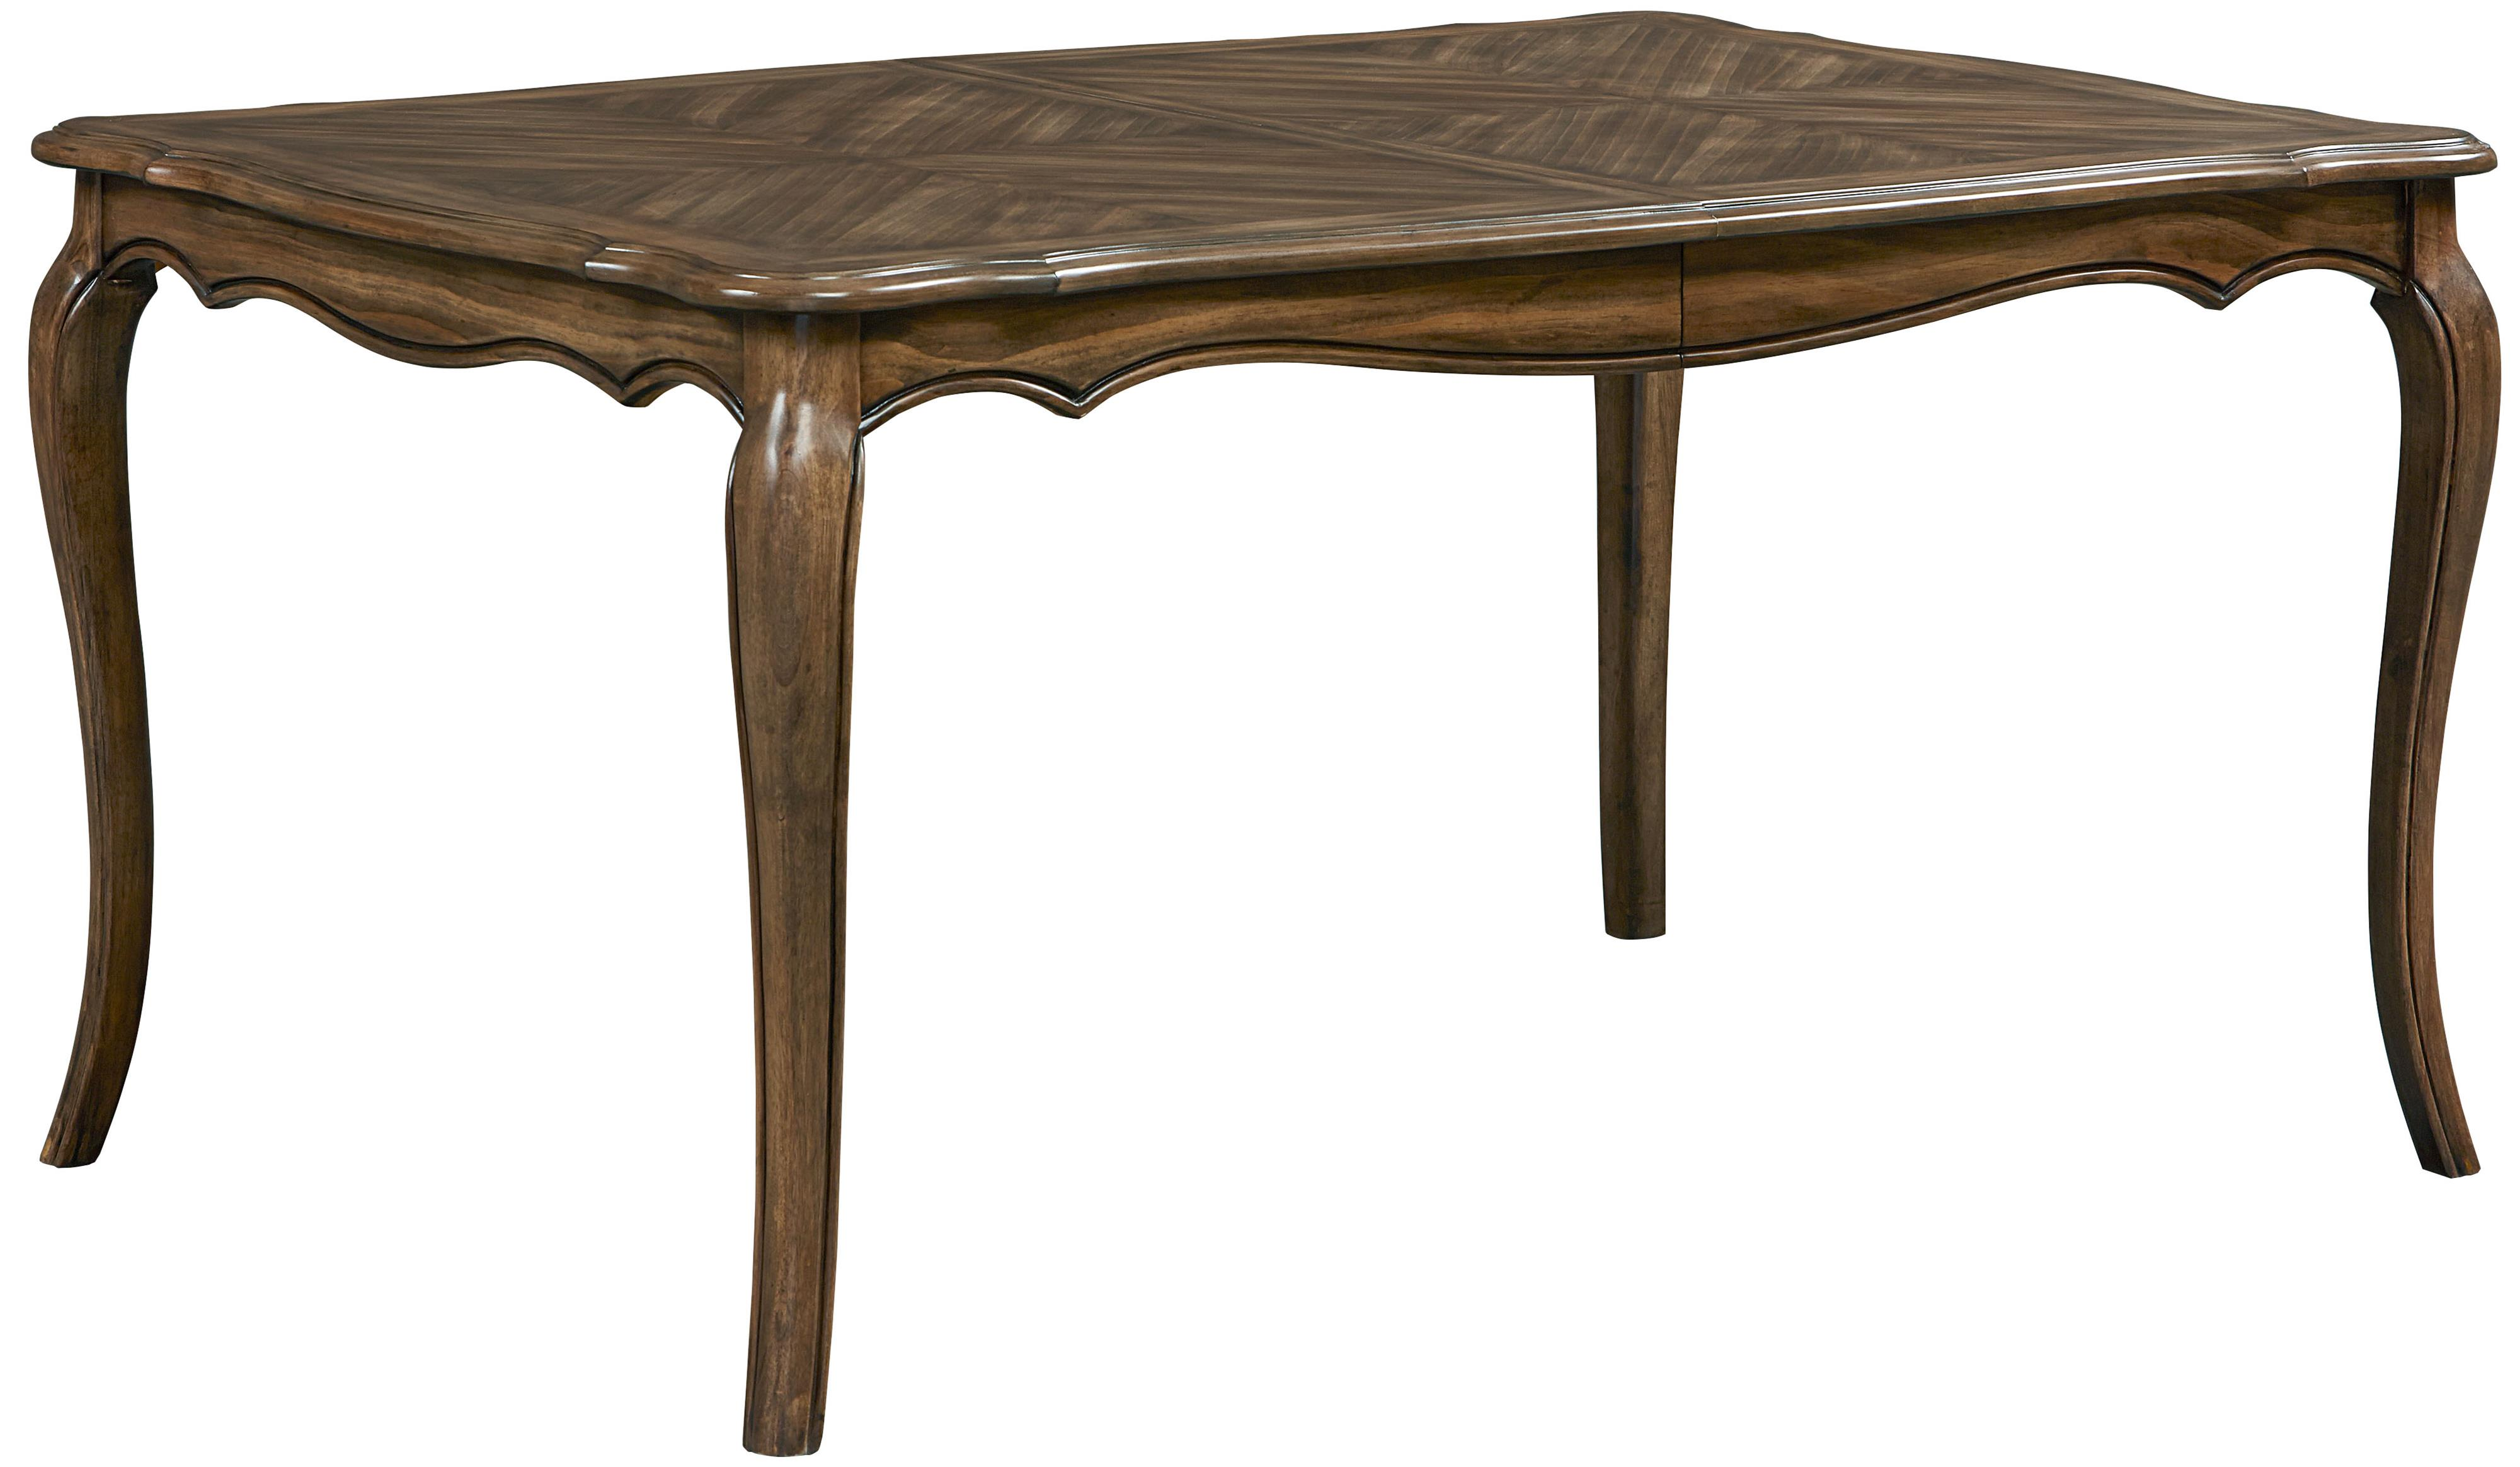 Standard Furniture Monterey Dining Table            - Item Number: 14361